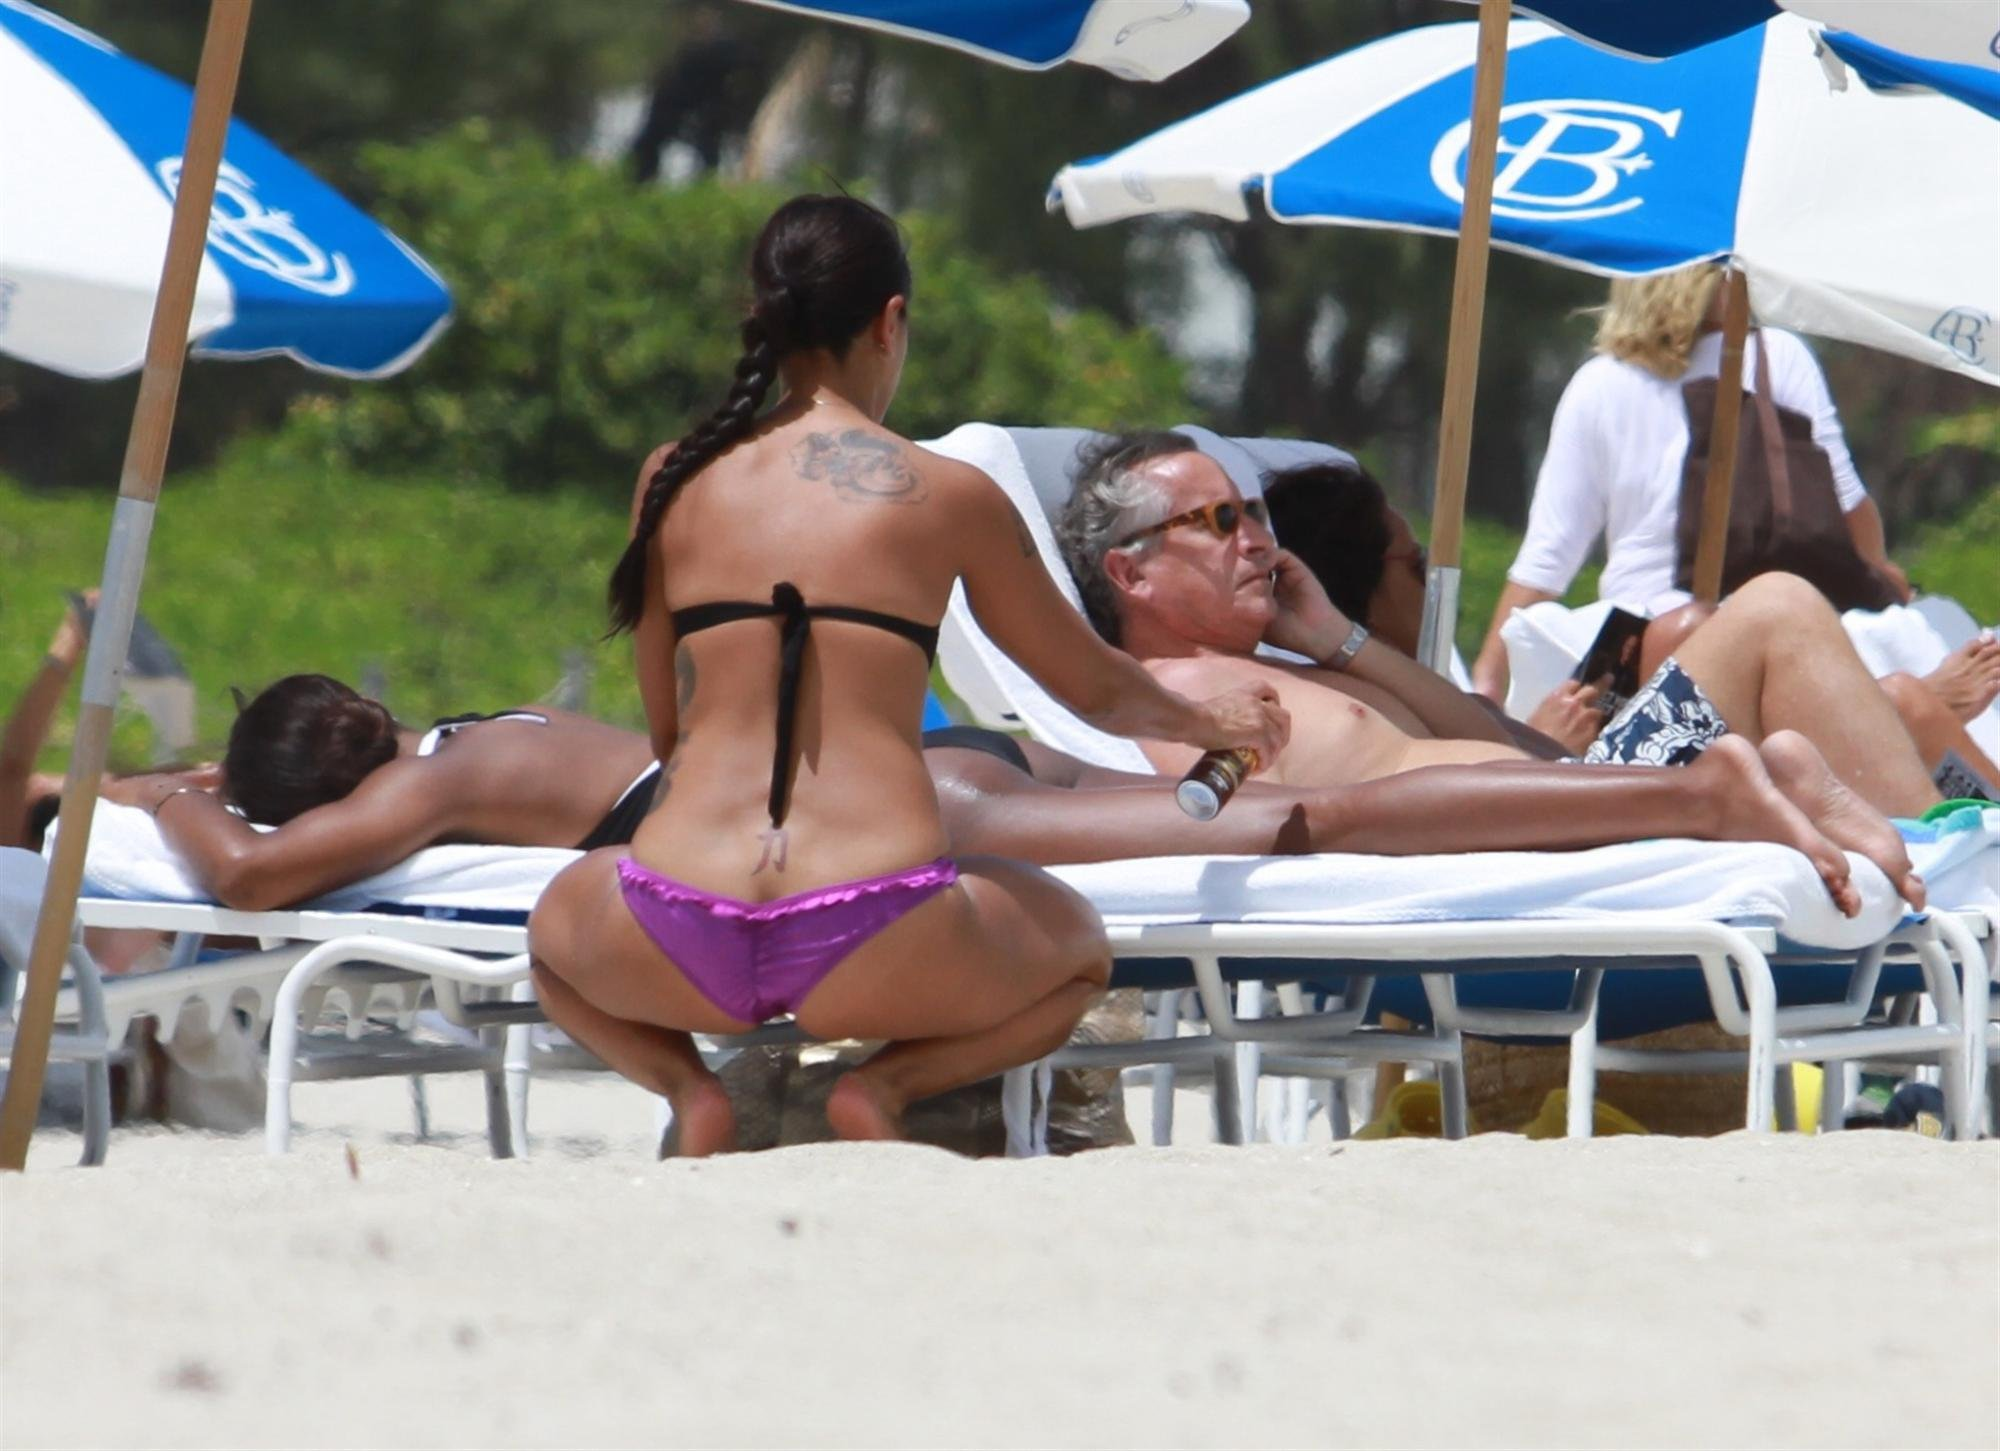 Kelly Rowland images Bikini Candids on the Beach in Miami 1 05 2011 HD  wallpaper and background photos